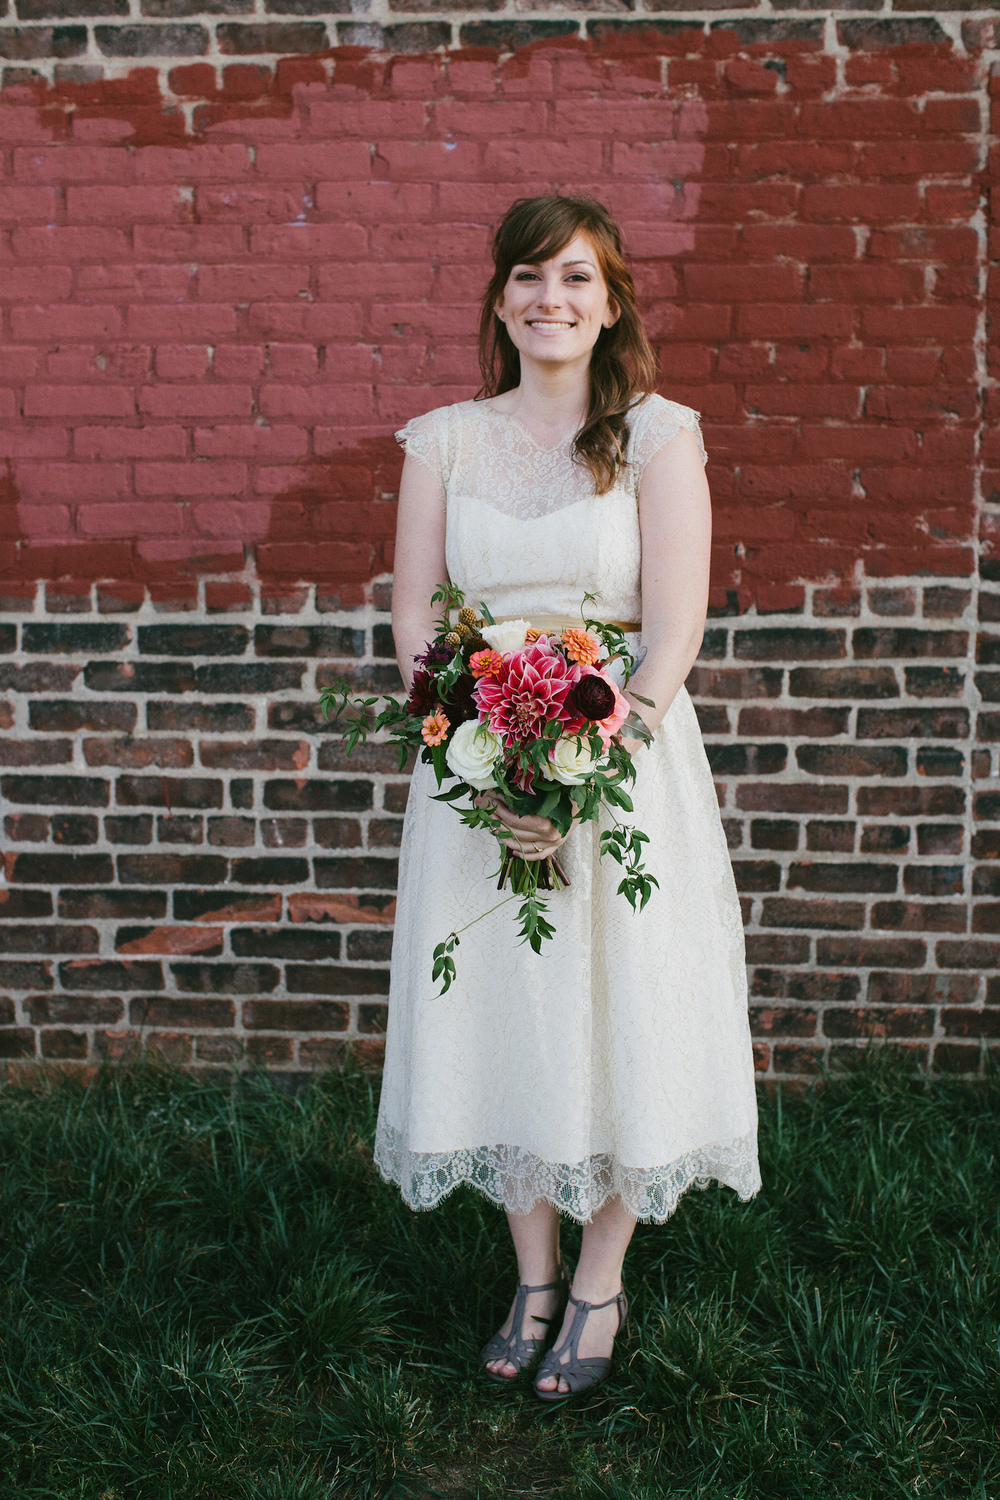 Full Aperture Floral & Corey Torpie Photography  - Brooklyn Wedding - 68.jpeg